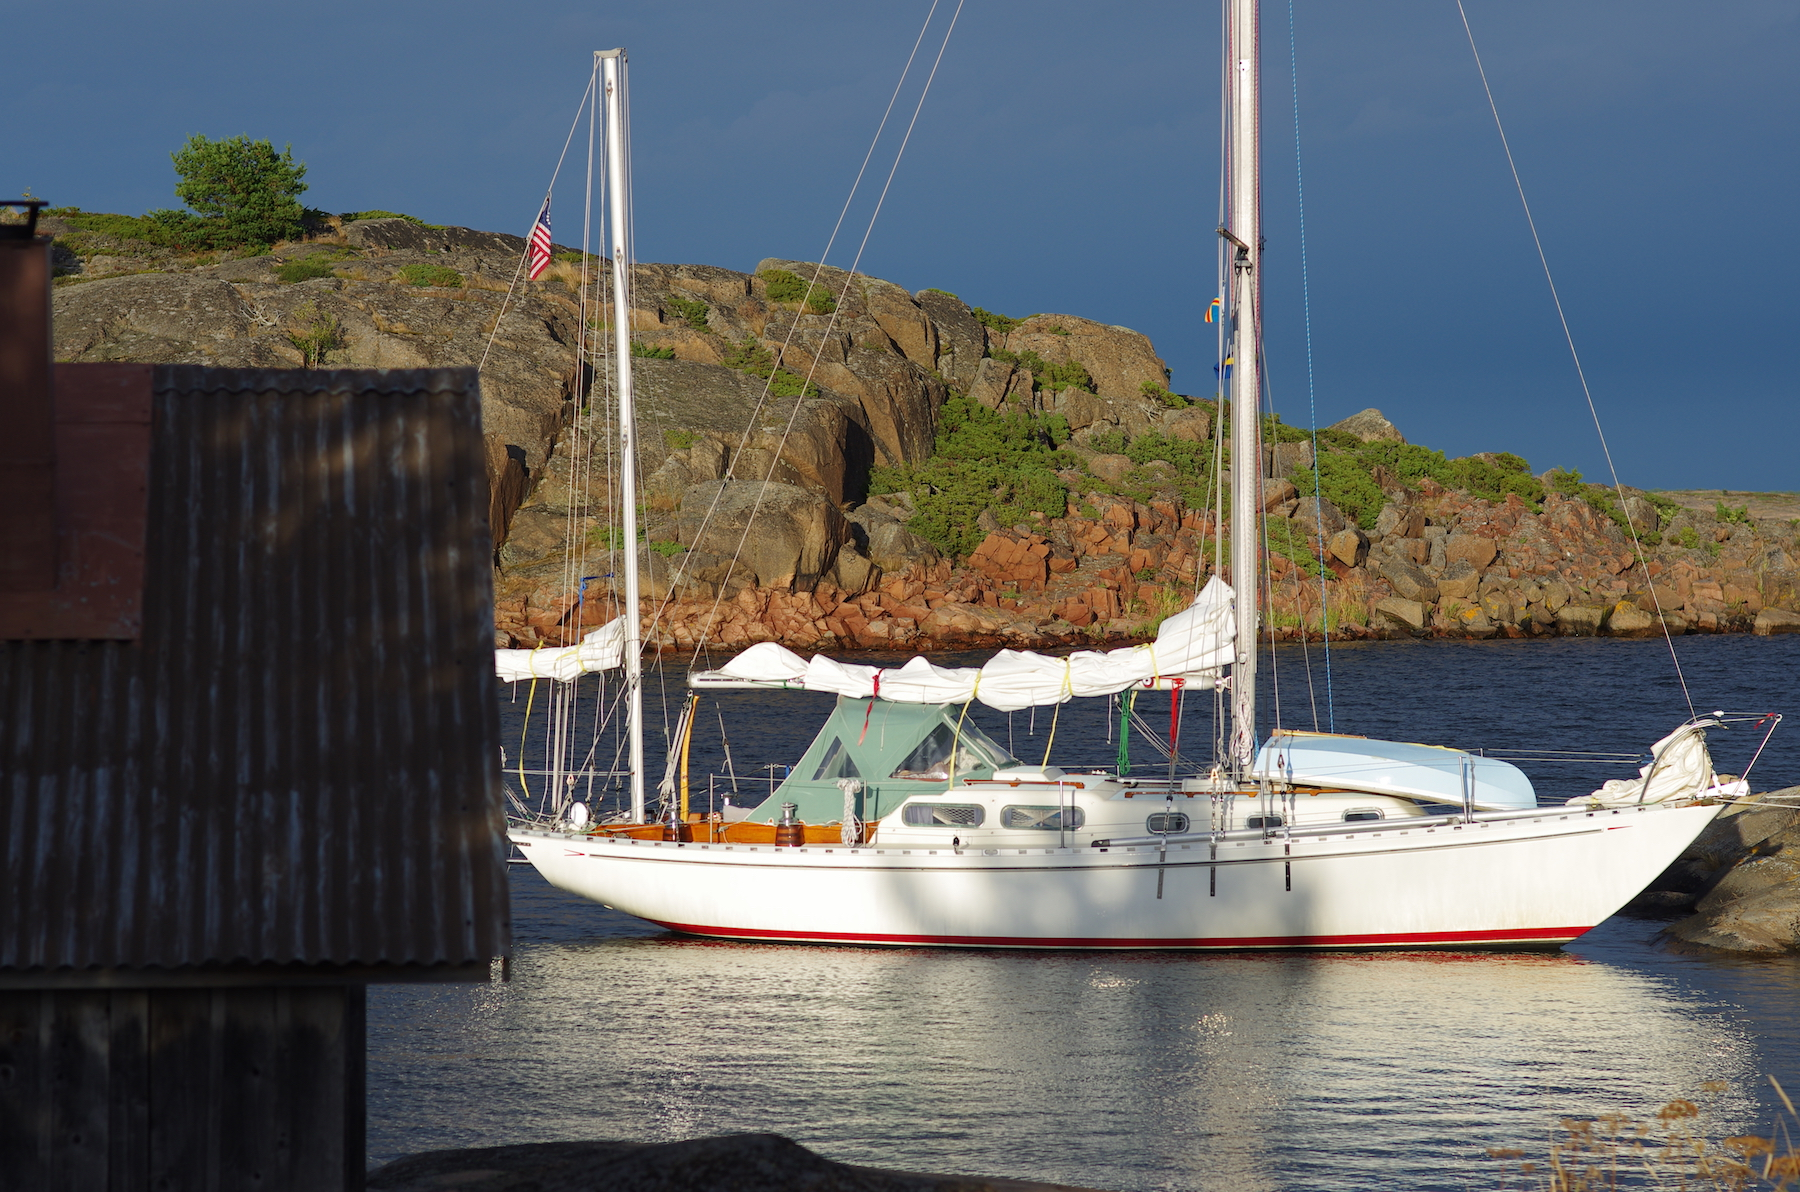 Cruising the Swedish and Finish Arcipelago for a couple of summers on Arcturus